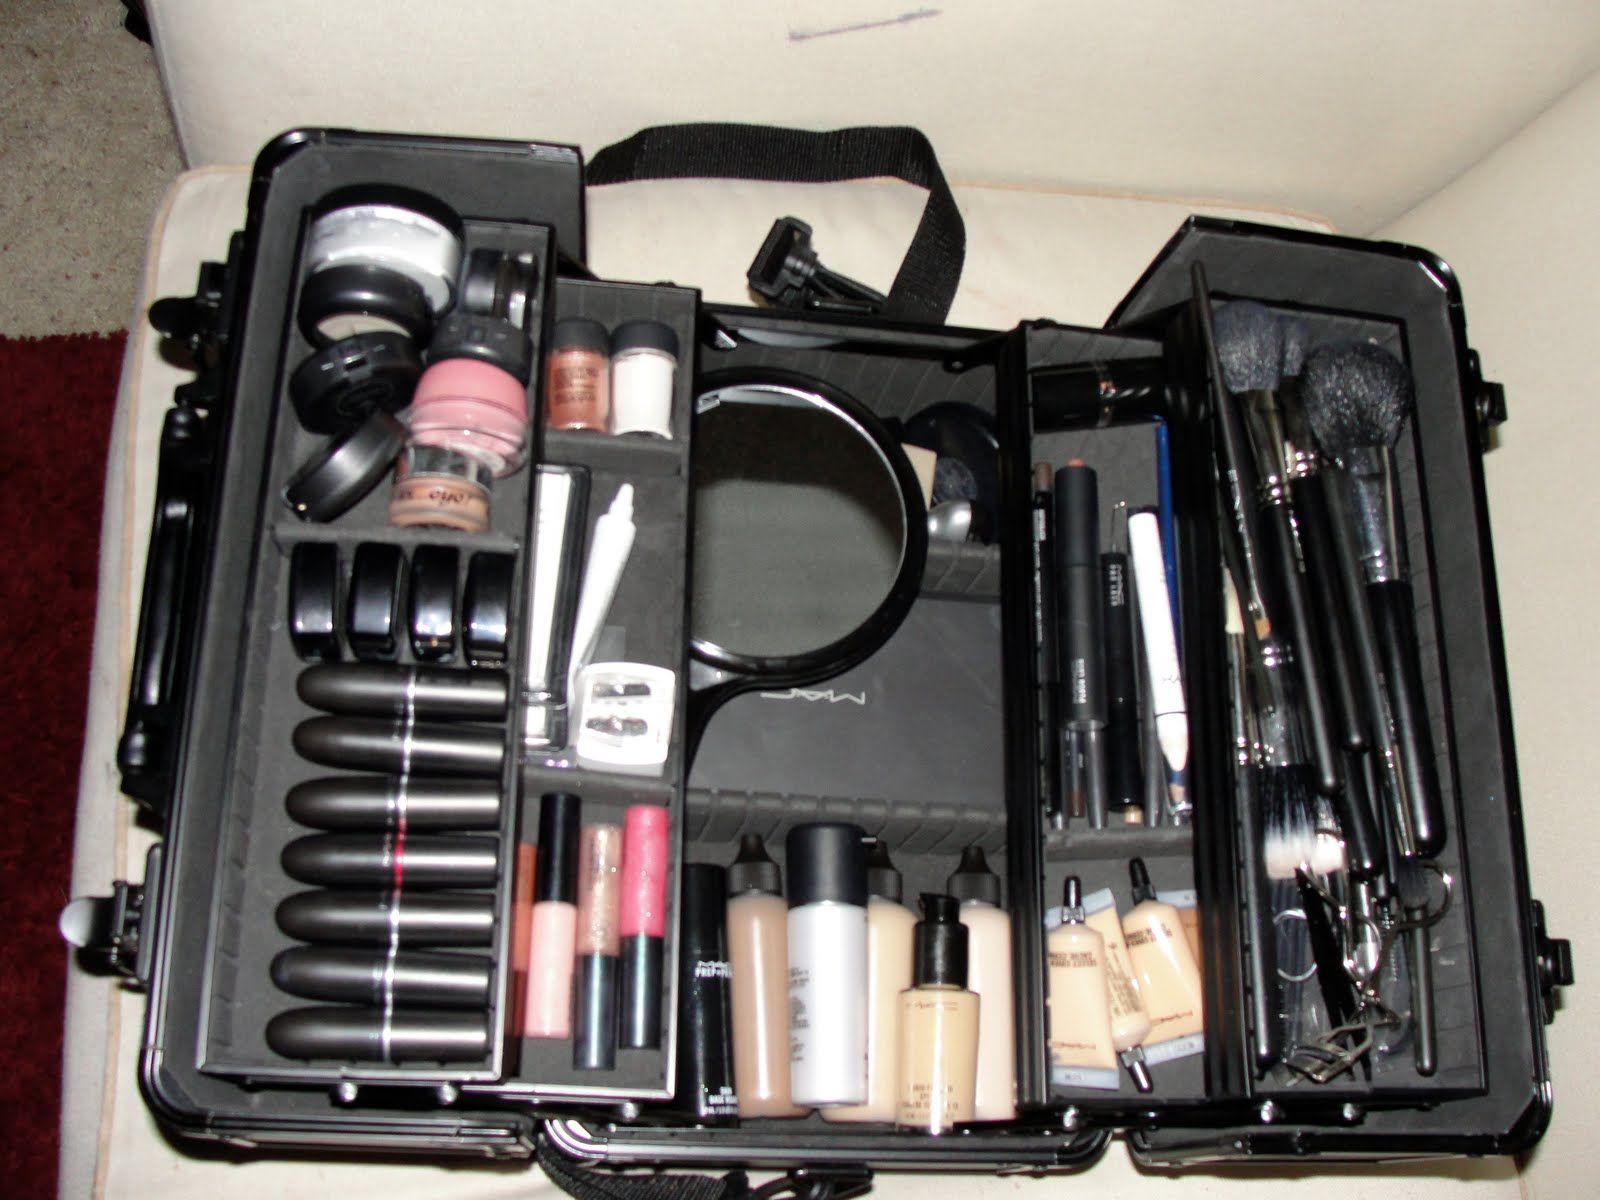 Image detail for -Live.Love.MakeUp...: Mac Pro Student Color/Tool Kit